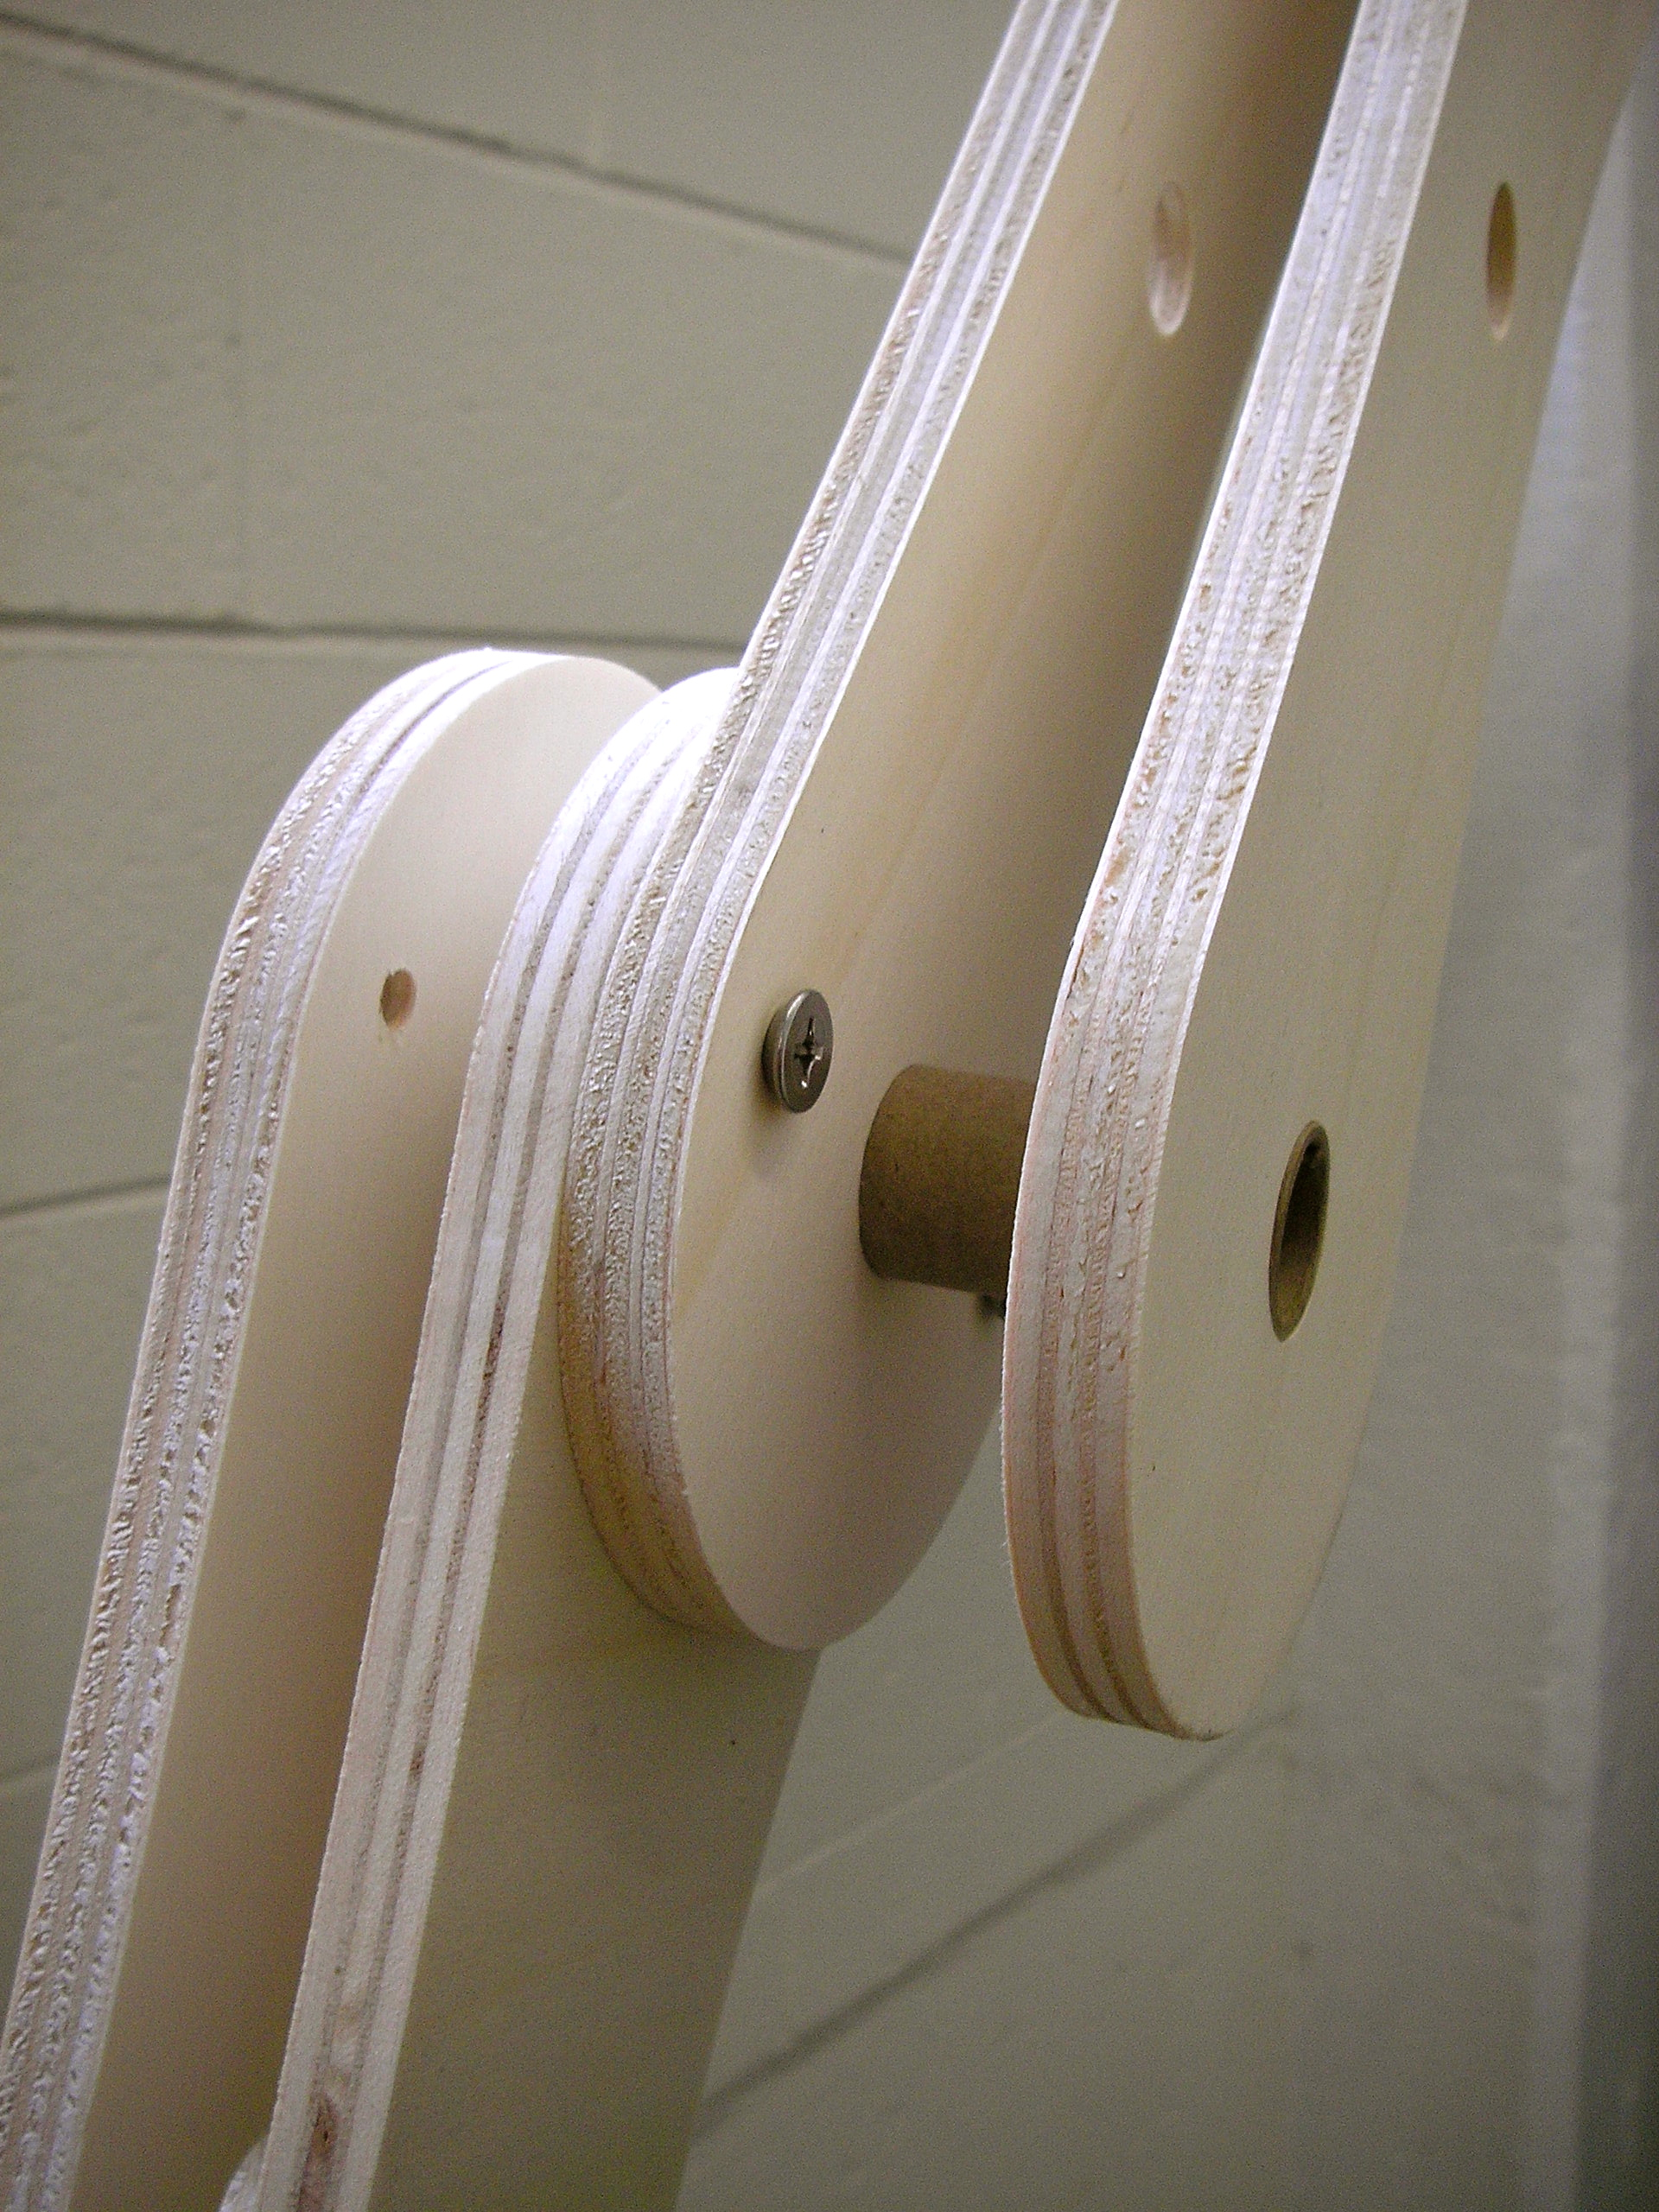 Curved joints are bolted together in graduated size ranges and spaced with a cardboard tube.